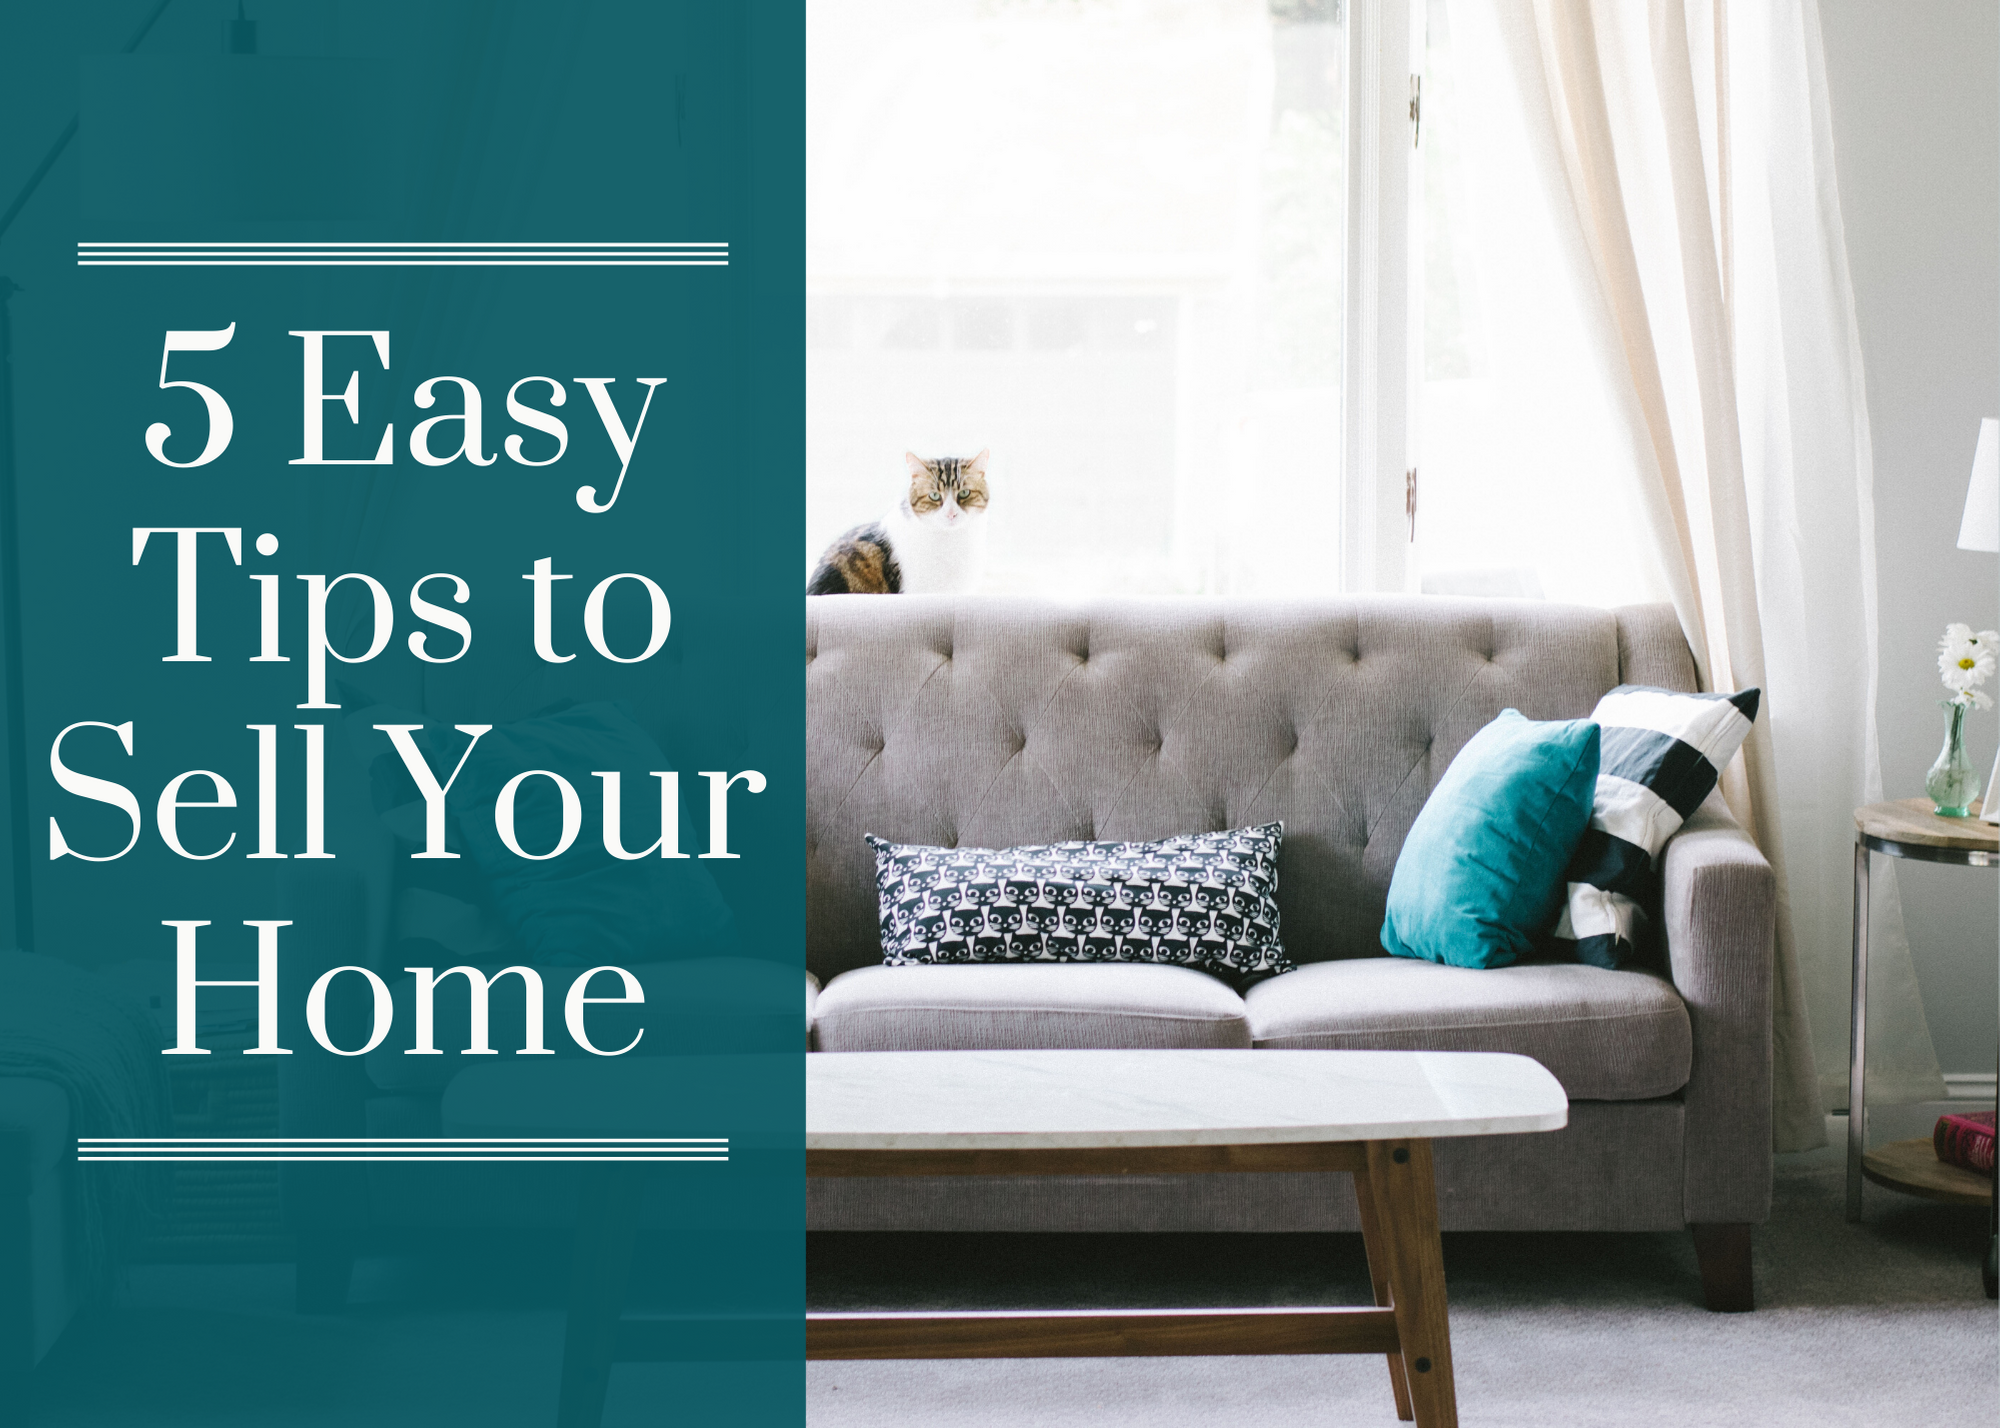 5 Easy Tips to Sell Your Home